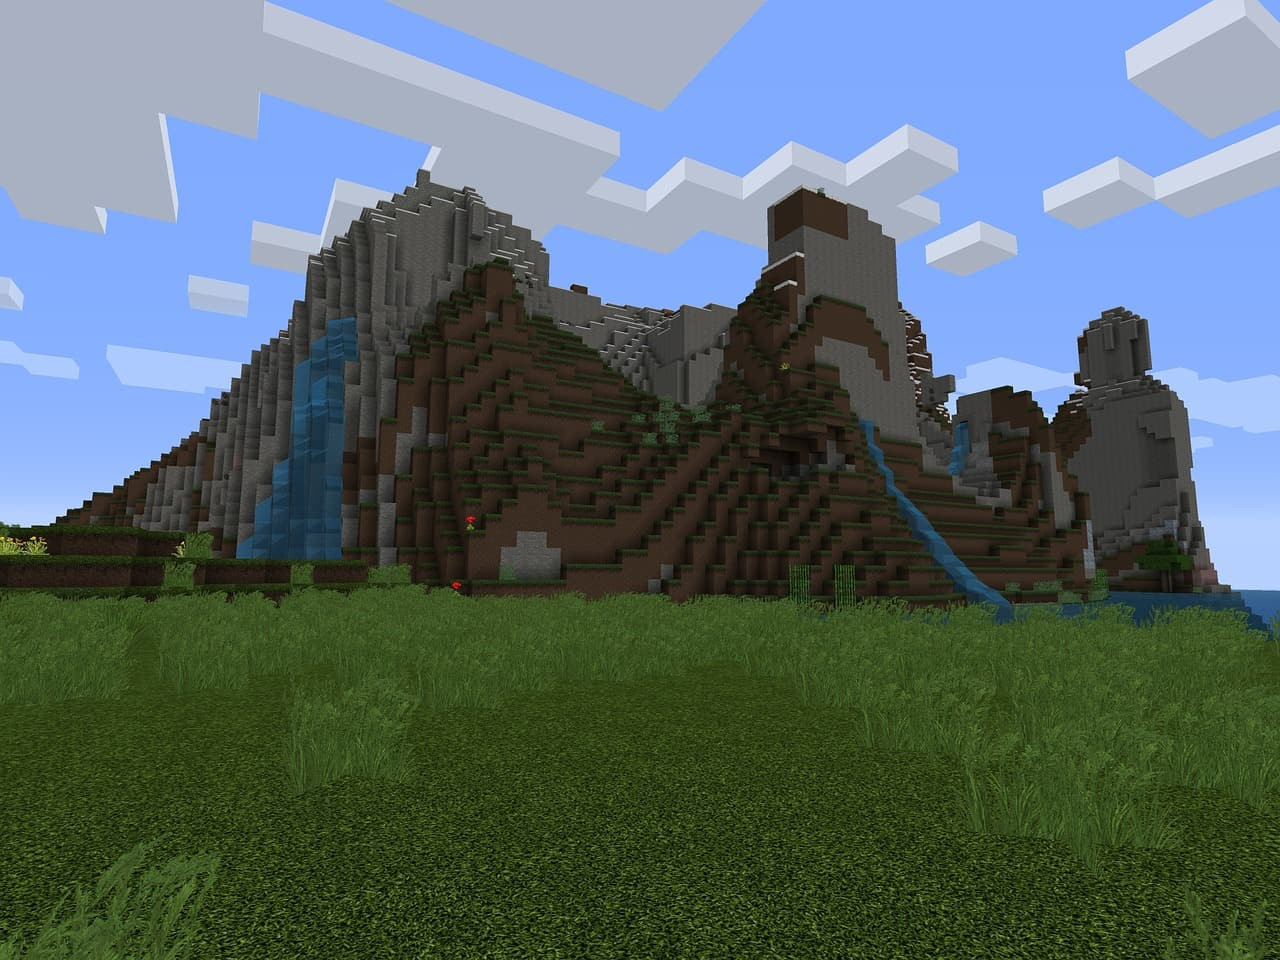 How To Make A Minecraft Texture Pack Easy Tutorials You Need To Know Tripboba Com